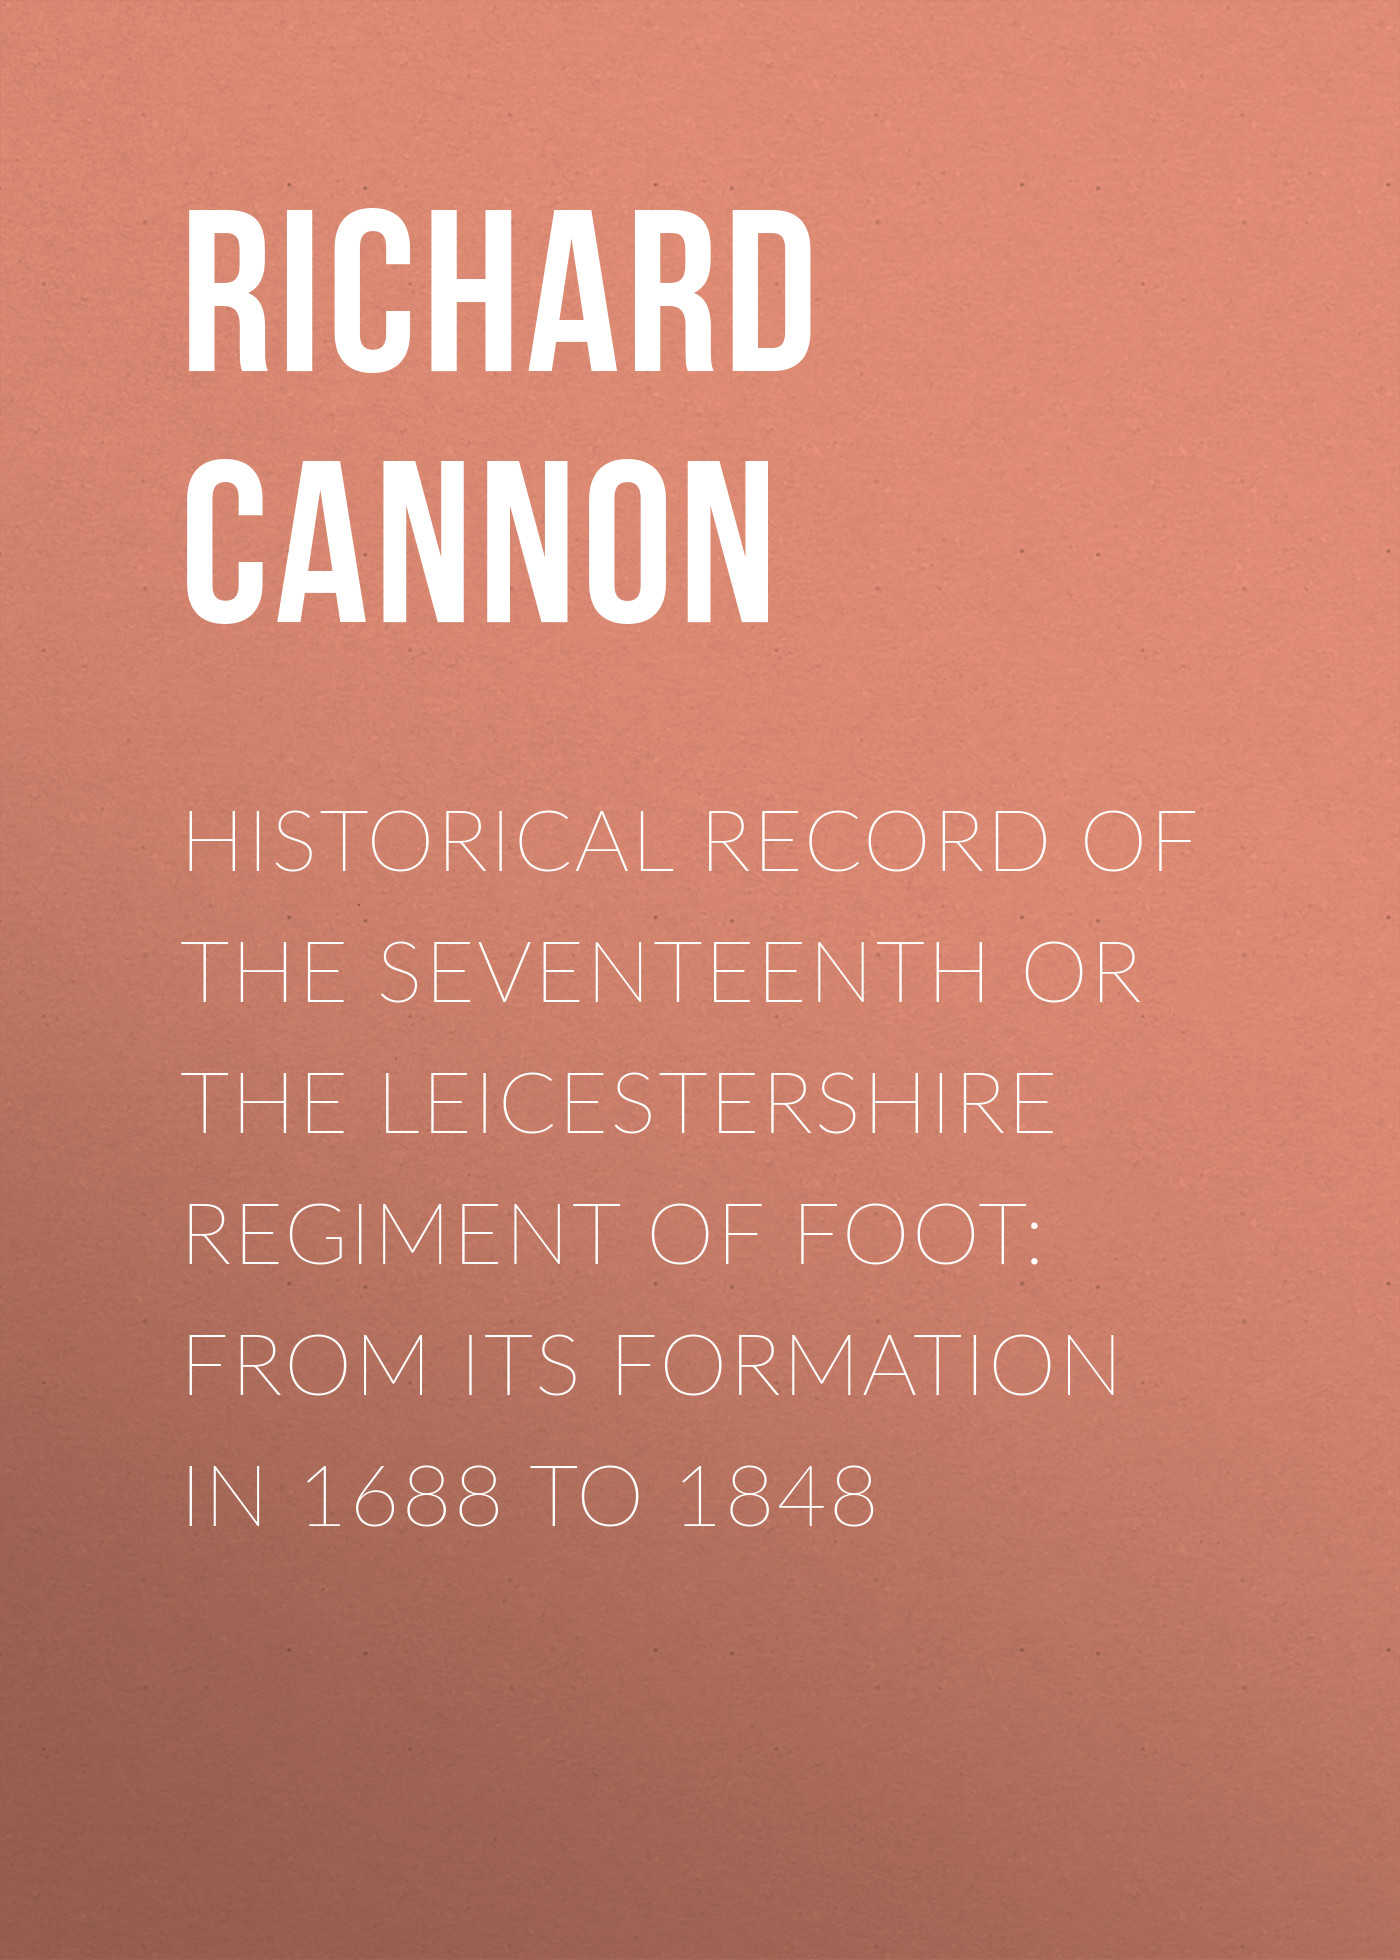 Cannon Richard Historical Record of the Seventeenth or The Leicestershire Regiment of Foot: From Its Formation in 1688 to 1848 cannon richard historical record of the ninth or the east norfolk regiment of foot microform